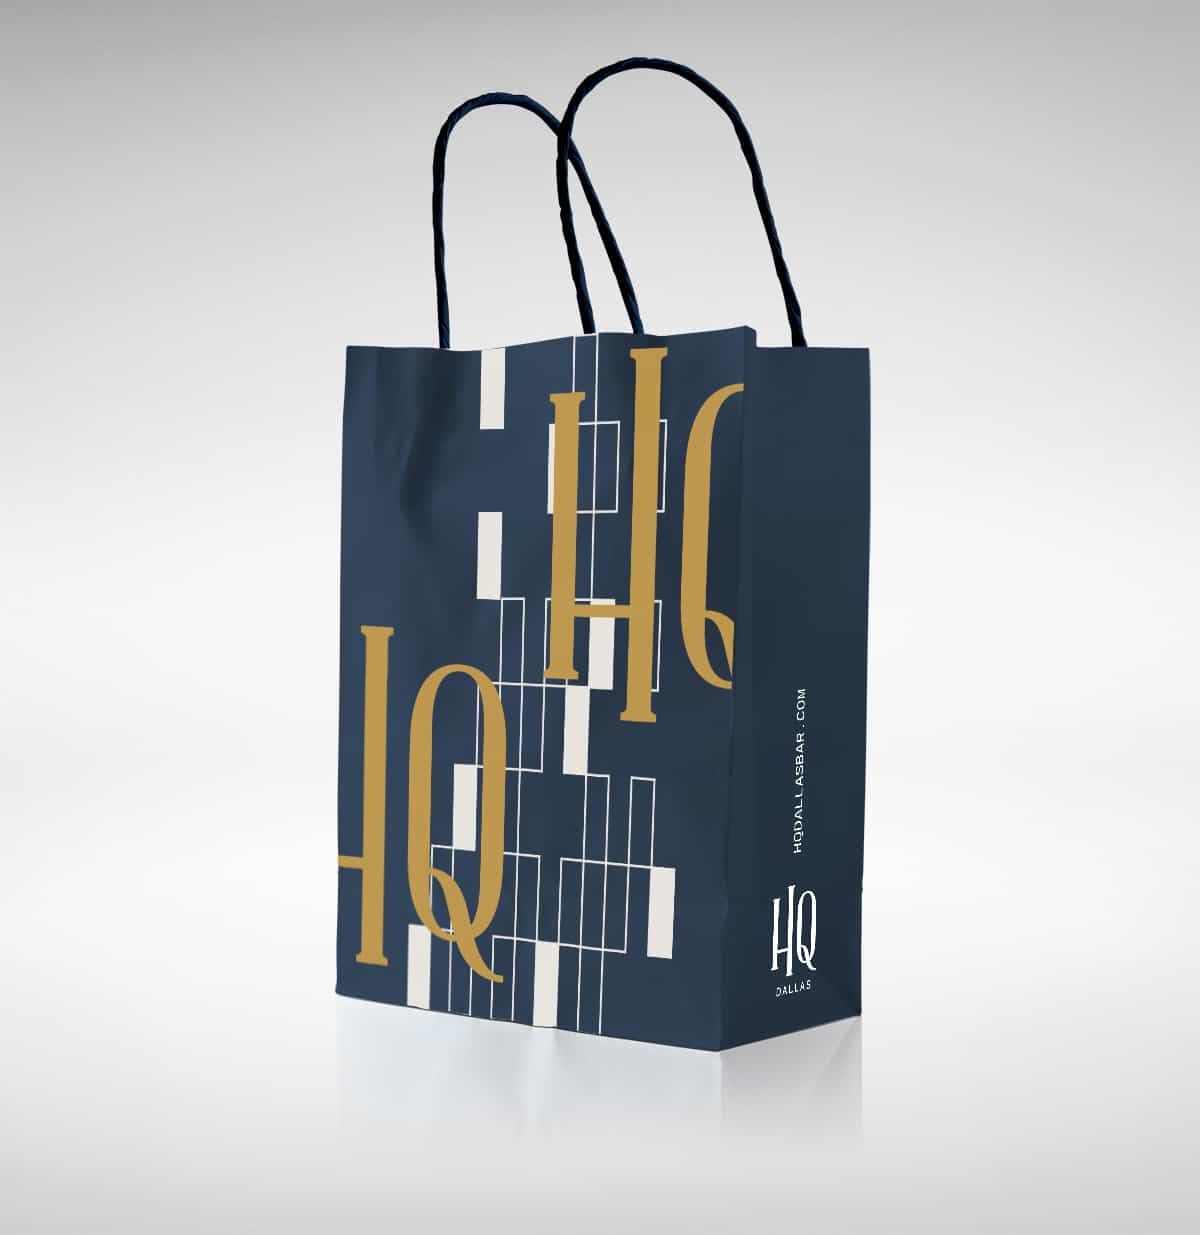 HQ Dallas rooftop bar experience branding and design by Vigor for Courtyard Marriott takeout bags